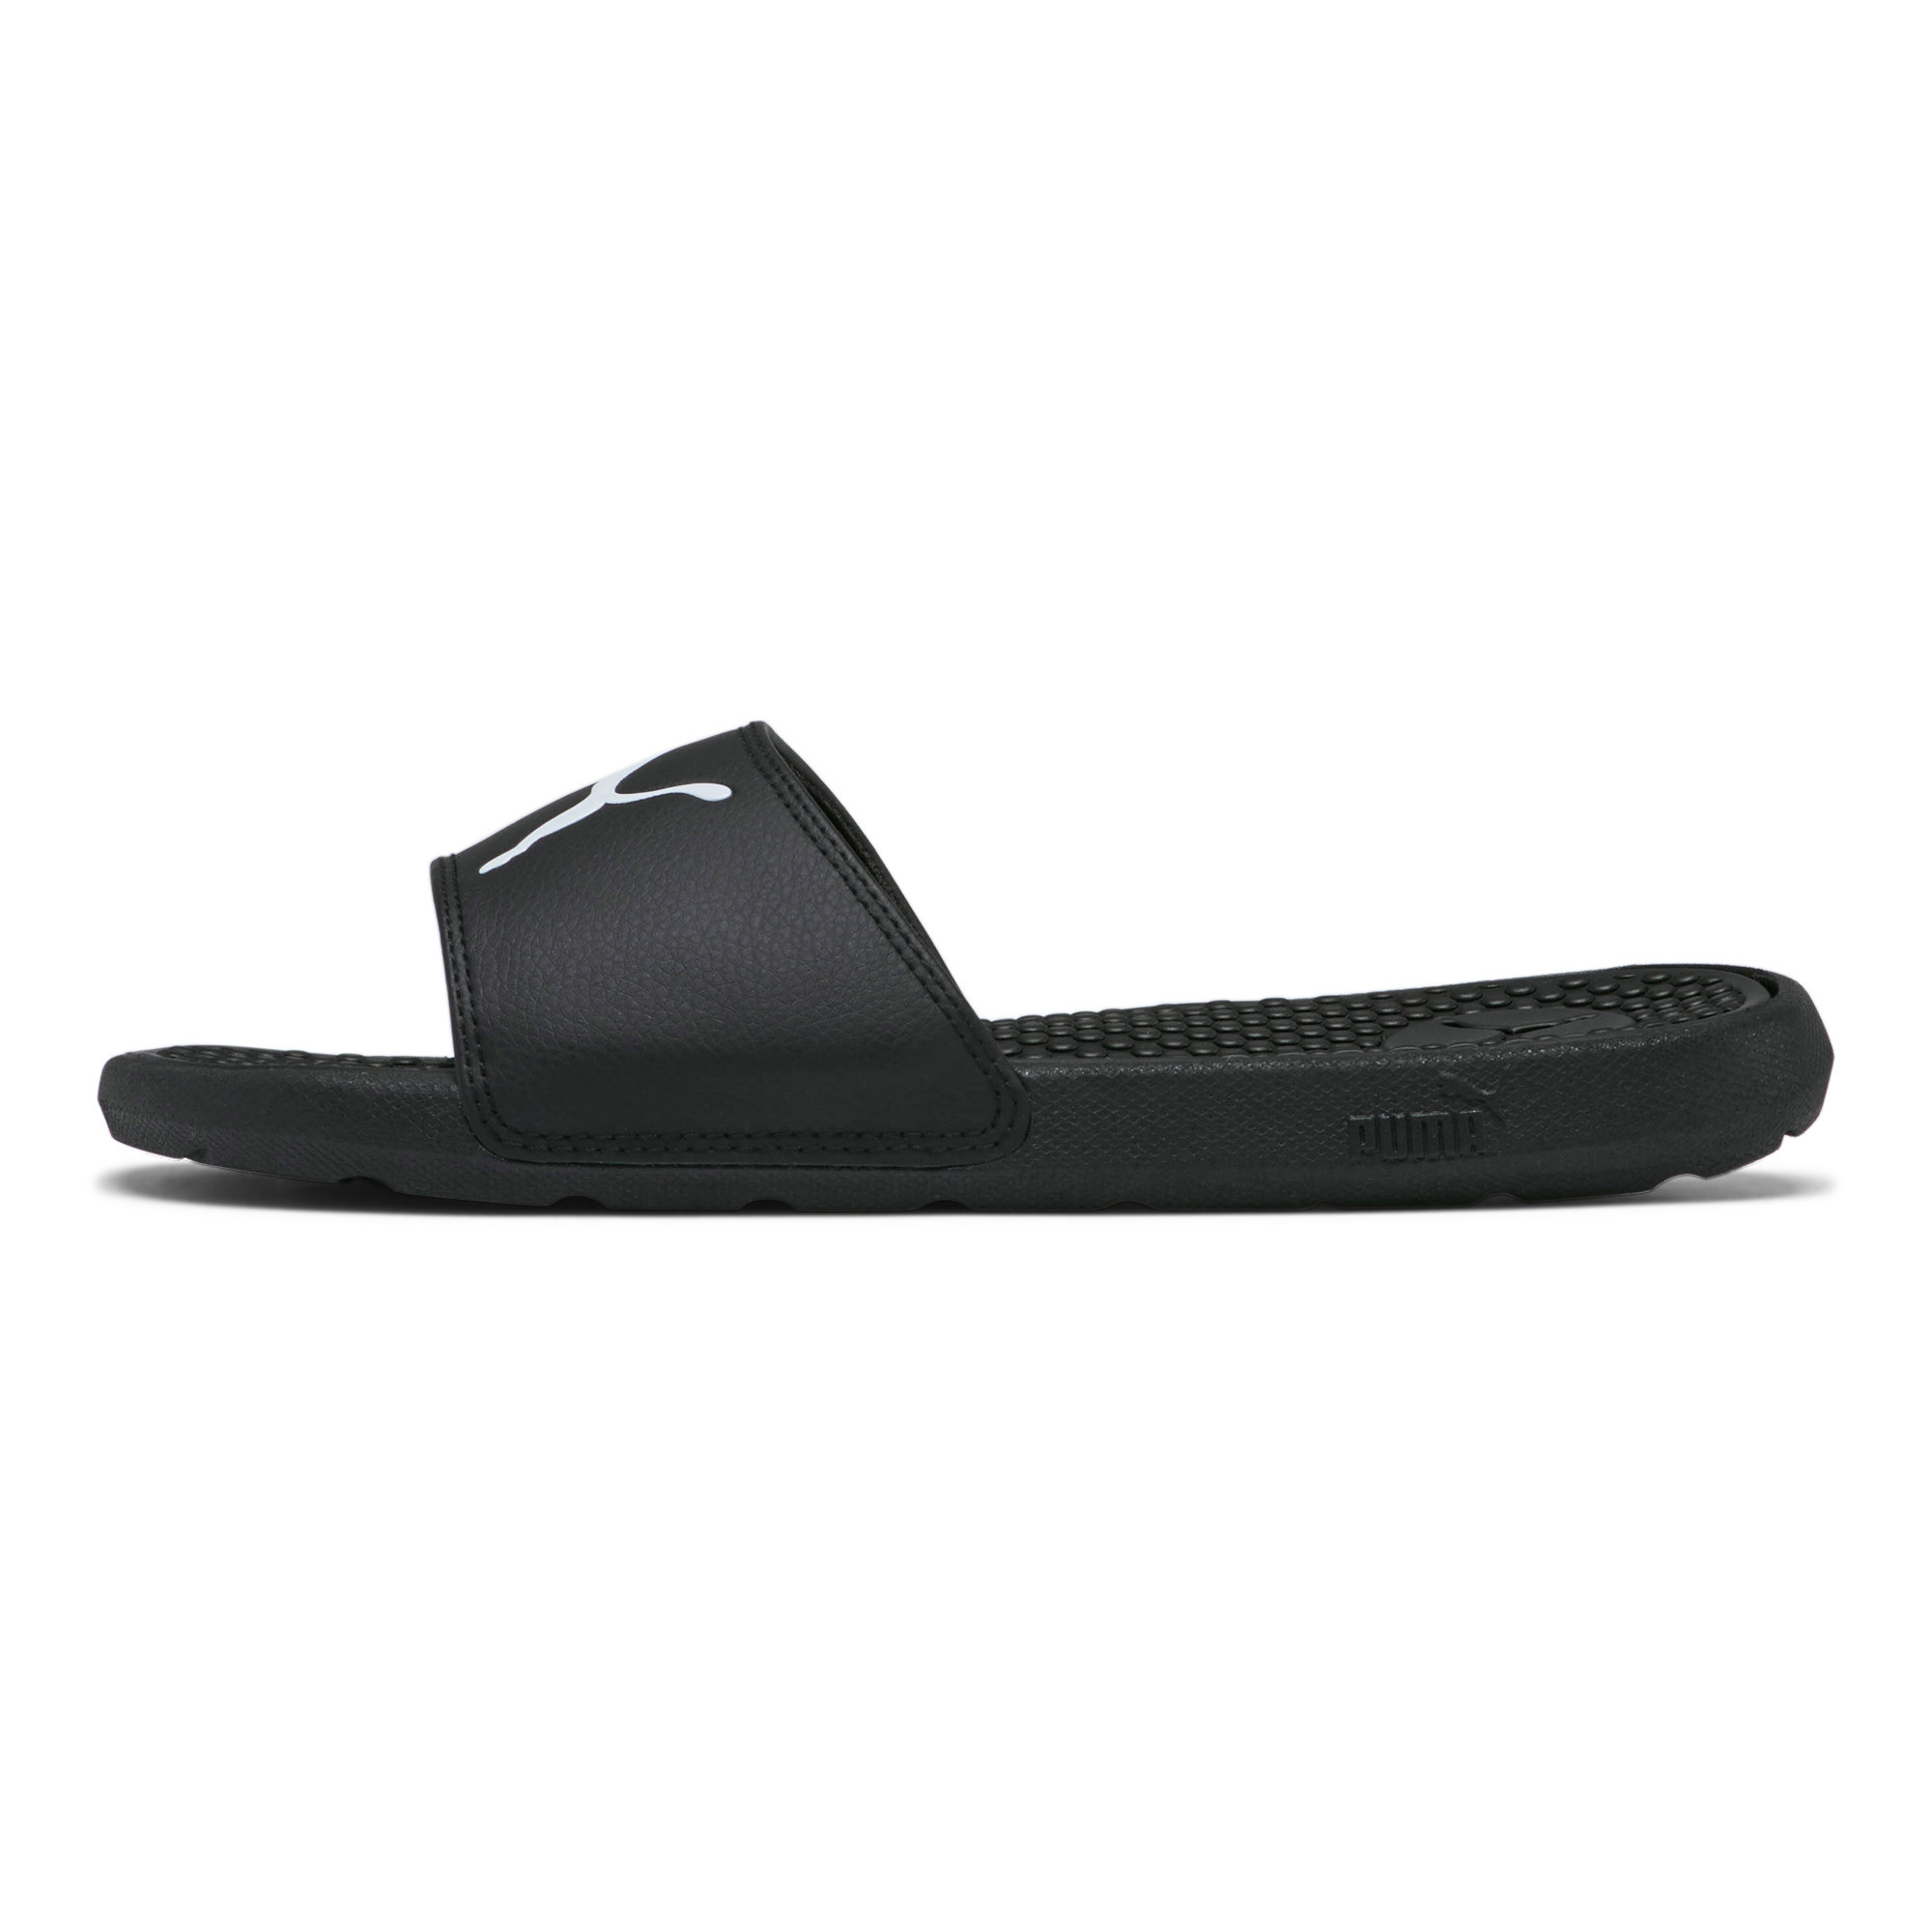 PUMA-Women-039-s-Cool-Cat-Sport-Slides thumbnail 4